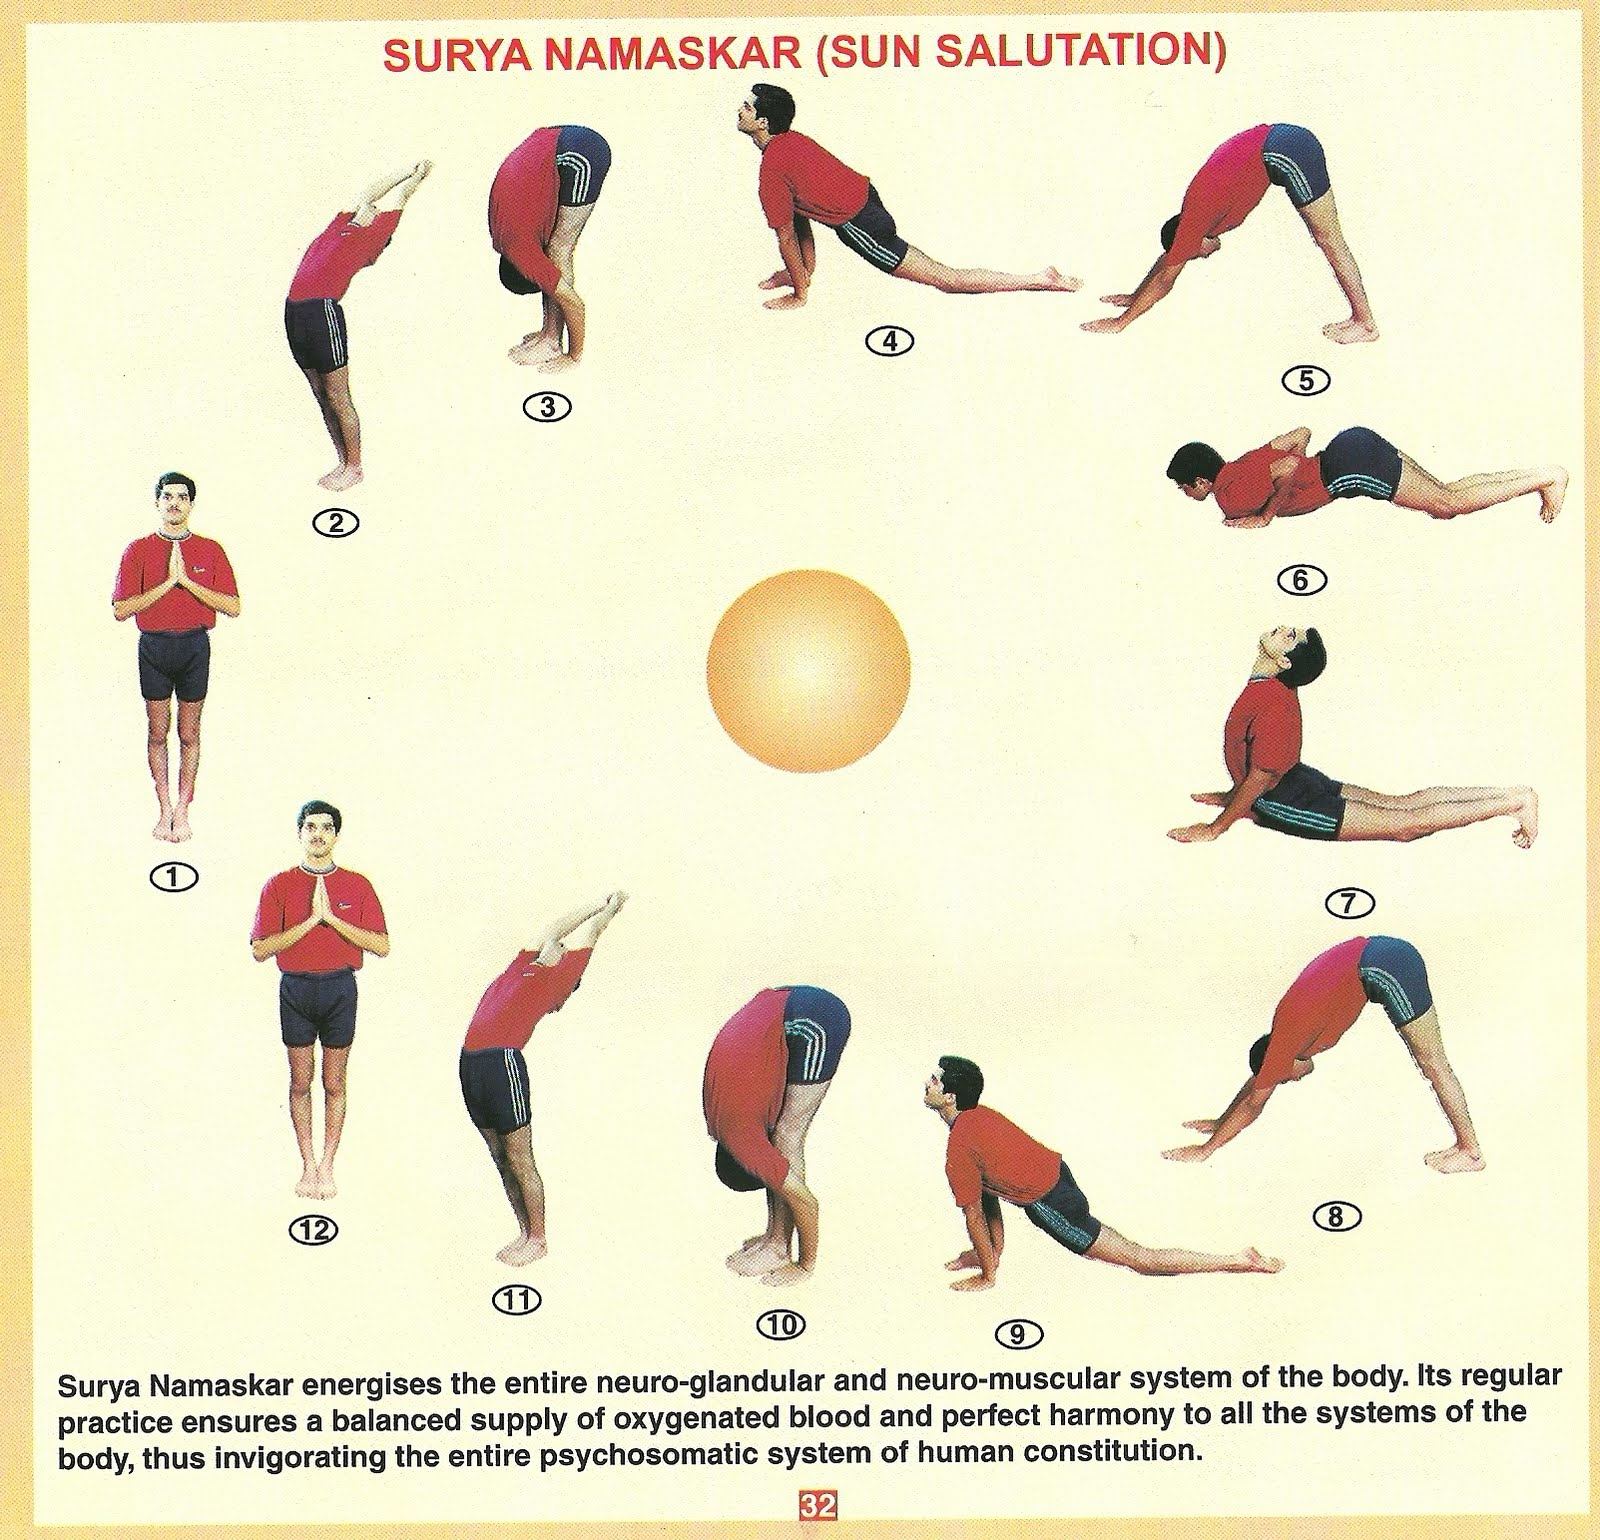 Running for life: Surya Namaskara